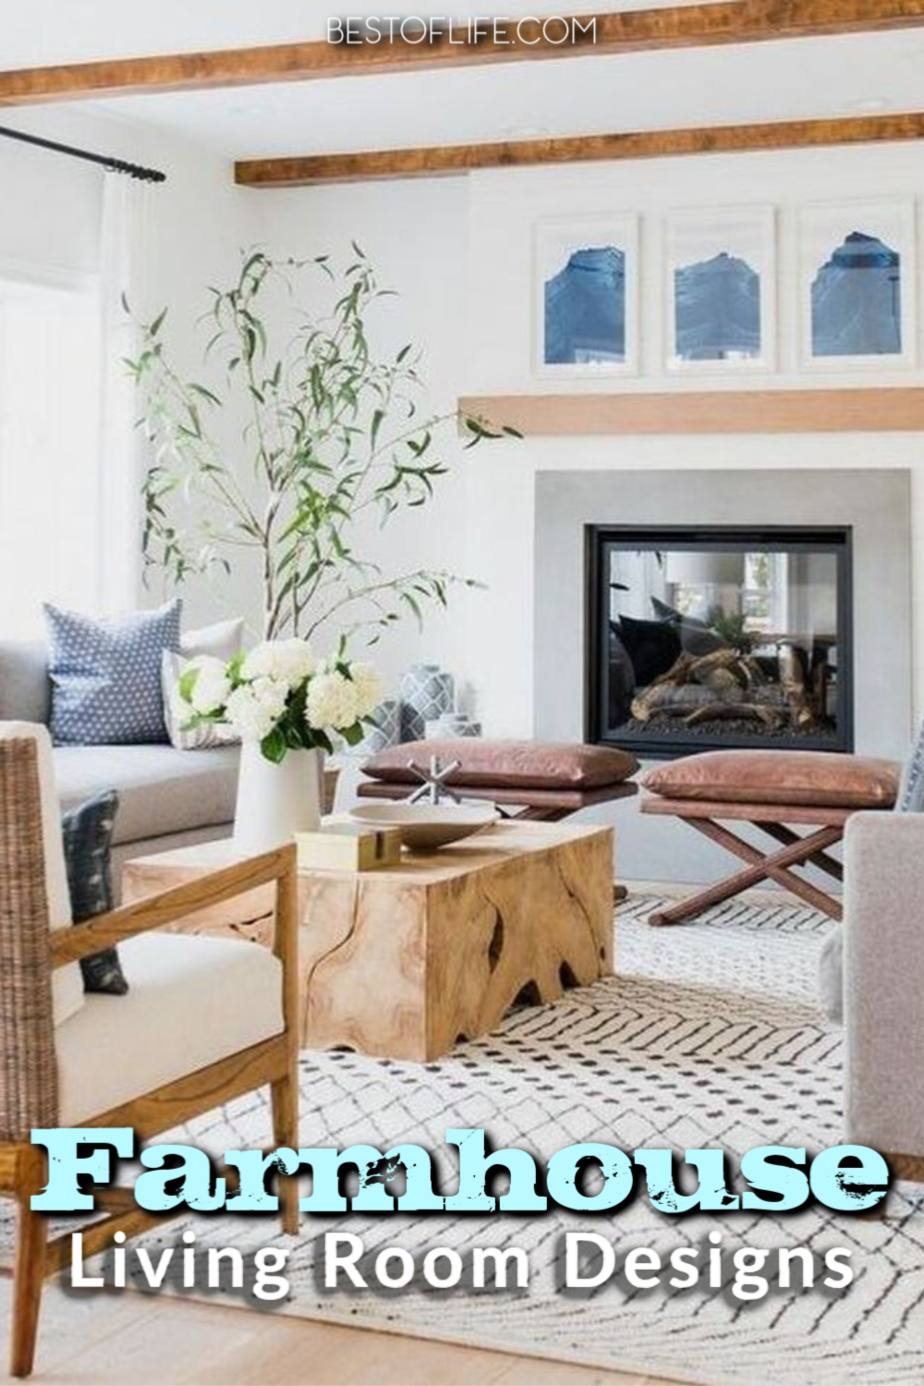 Faux farmhouse living room designs are not only chic living room designs, but they're also easy DIY home designs for a modern look. Home Décor Ideas   DIY Home Designs   Farmhouse Décor Ideas   Farmhouse Designs   Farmhouse Home Décor   DIY Home Décor #decor #home